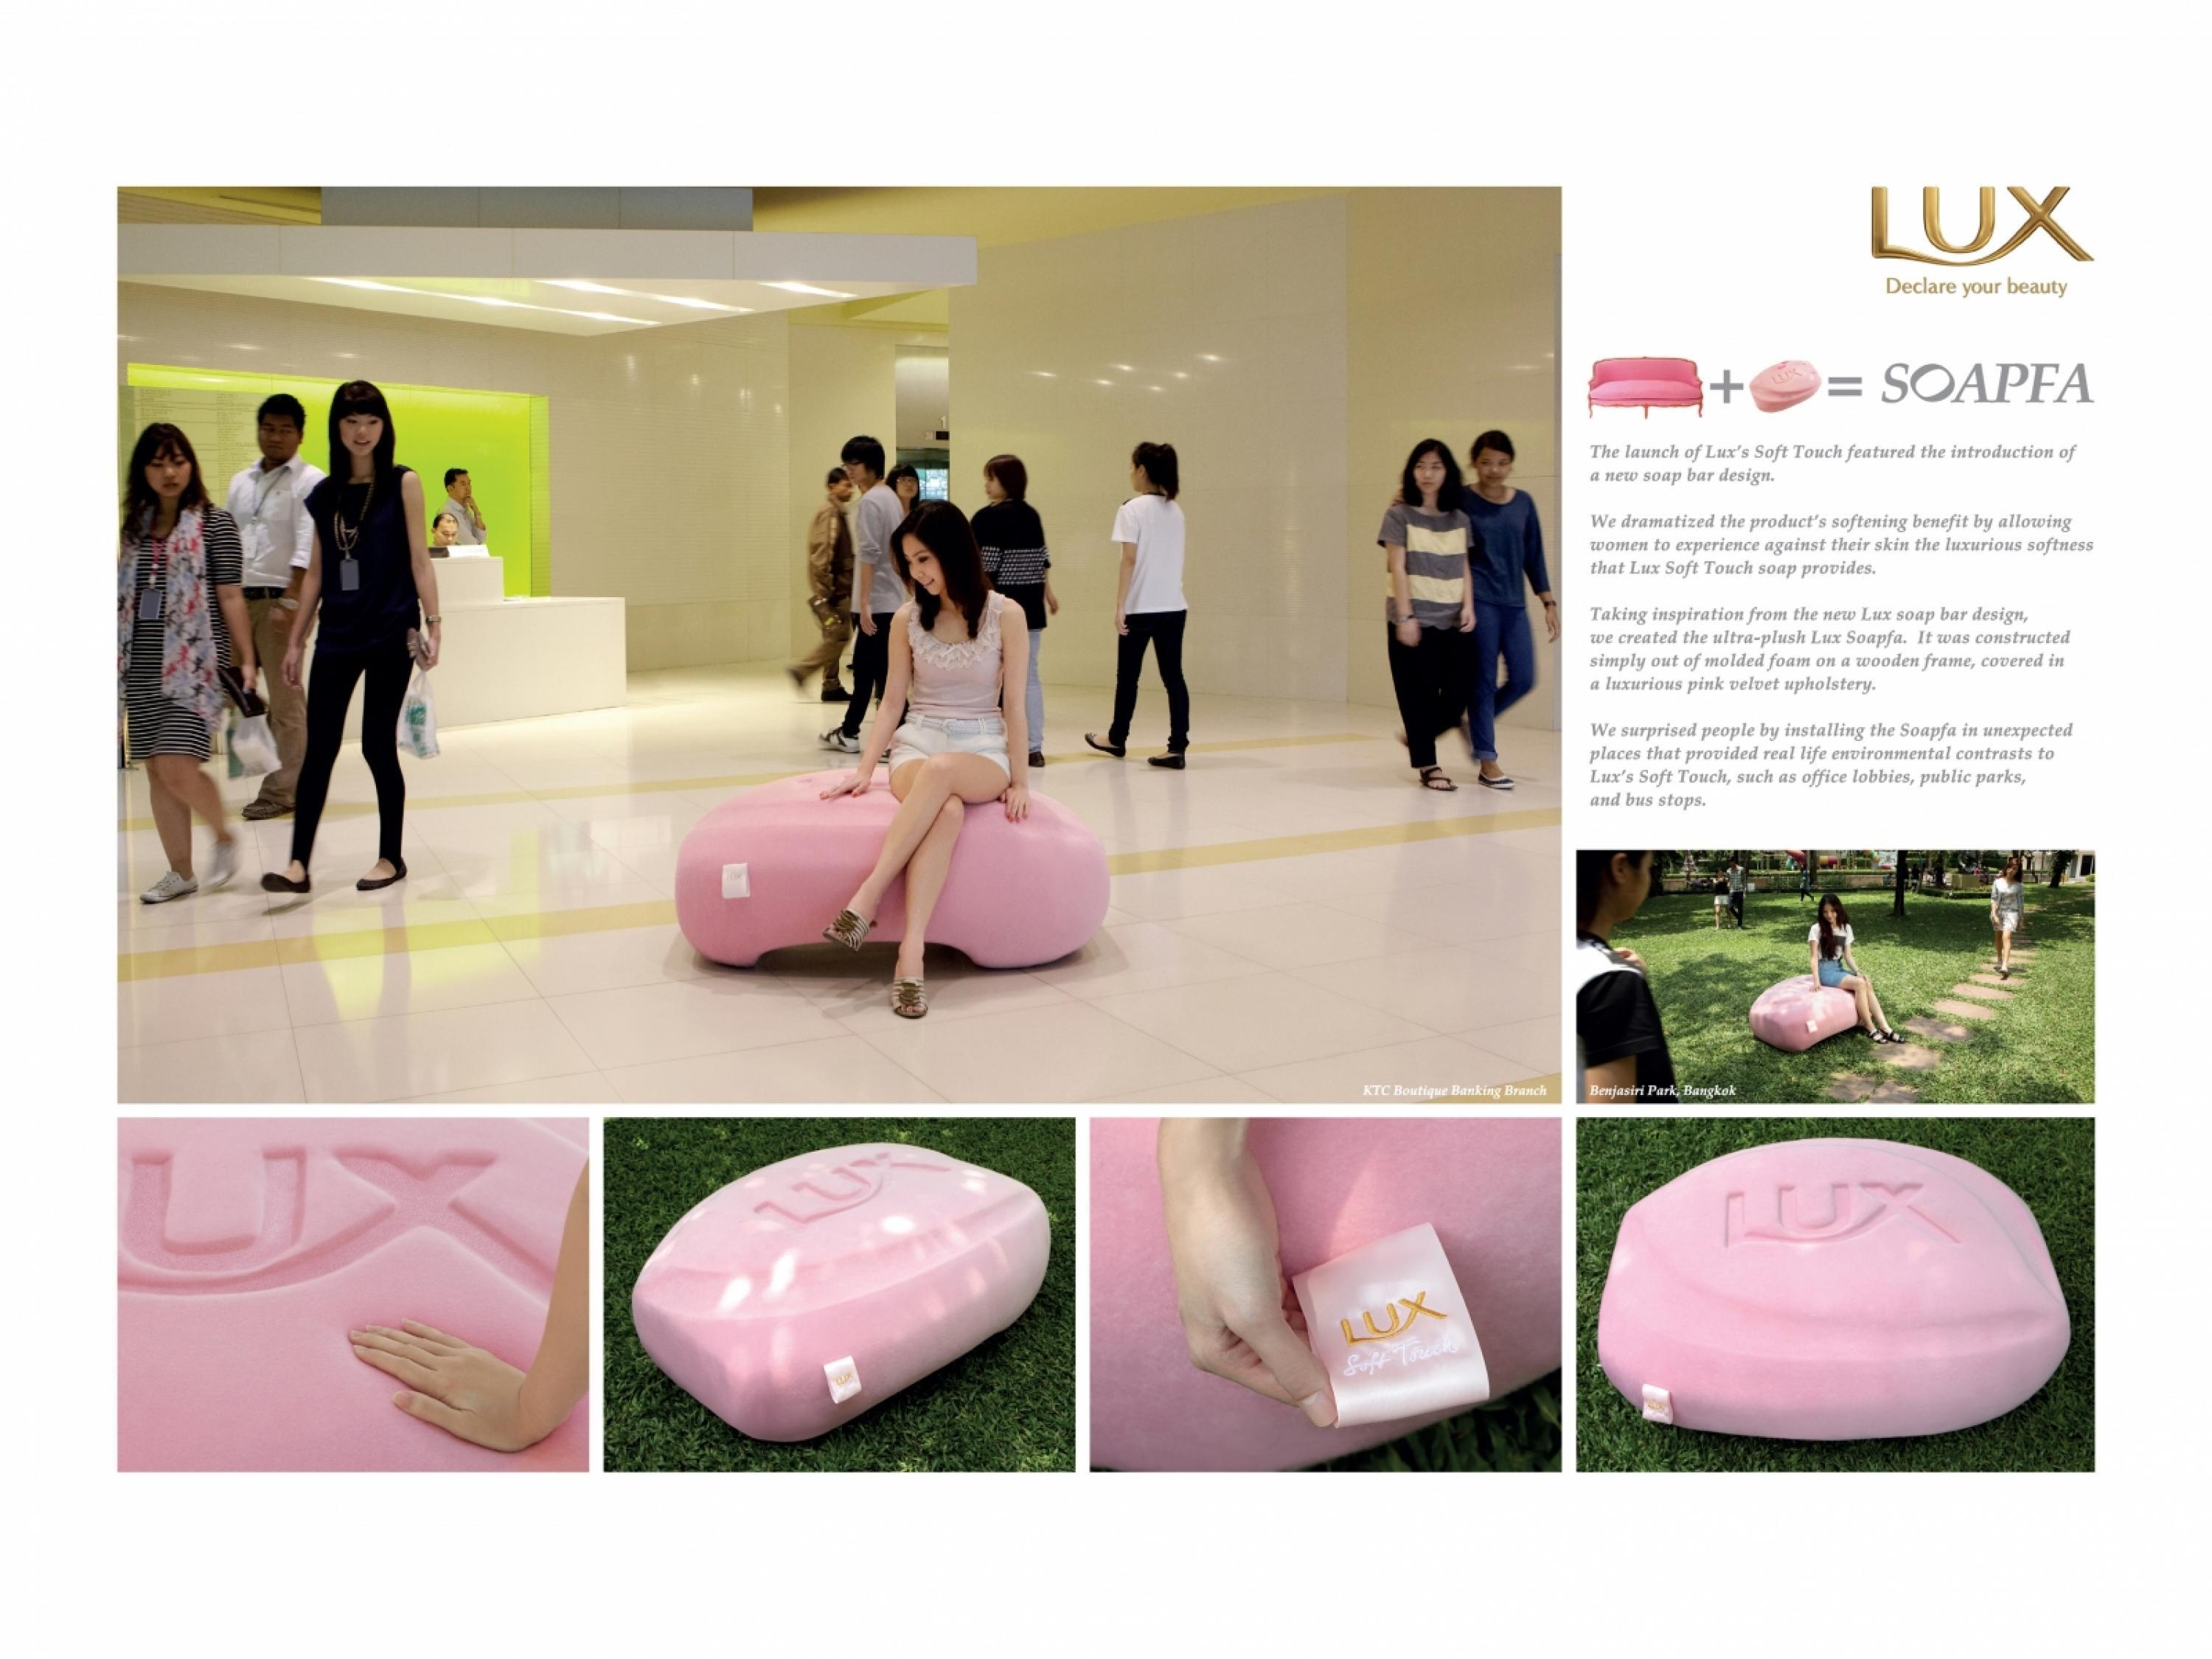 Adeevee | Only selected creativity - Unilever Thai Trading Lux Soap